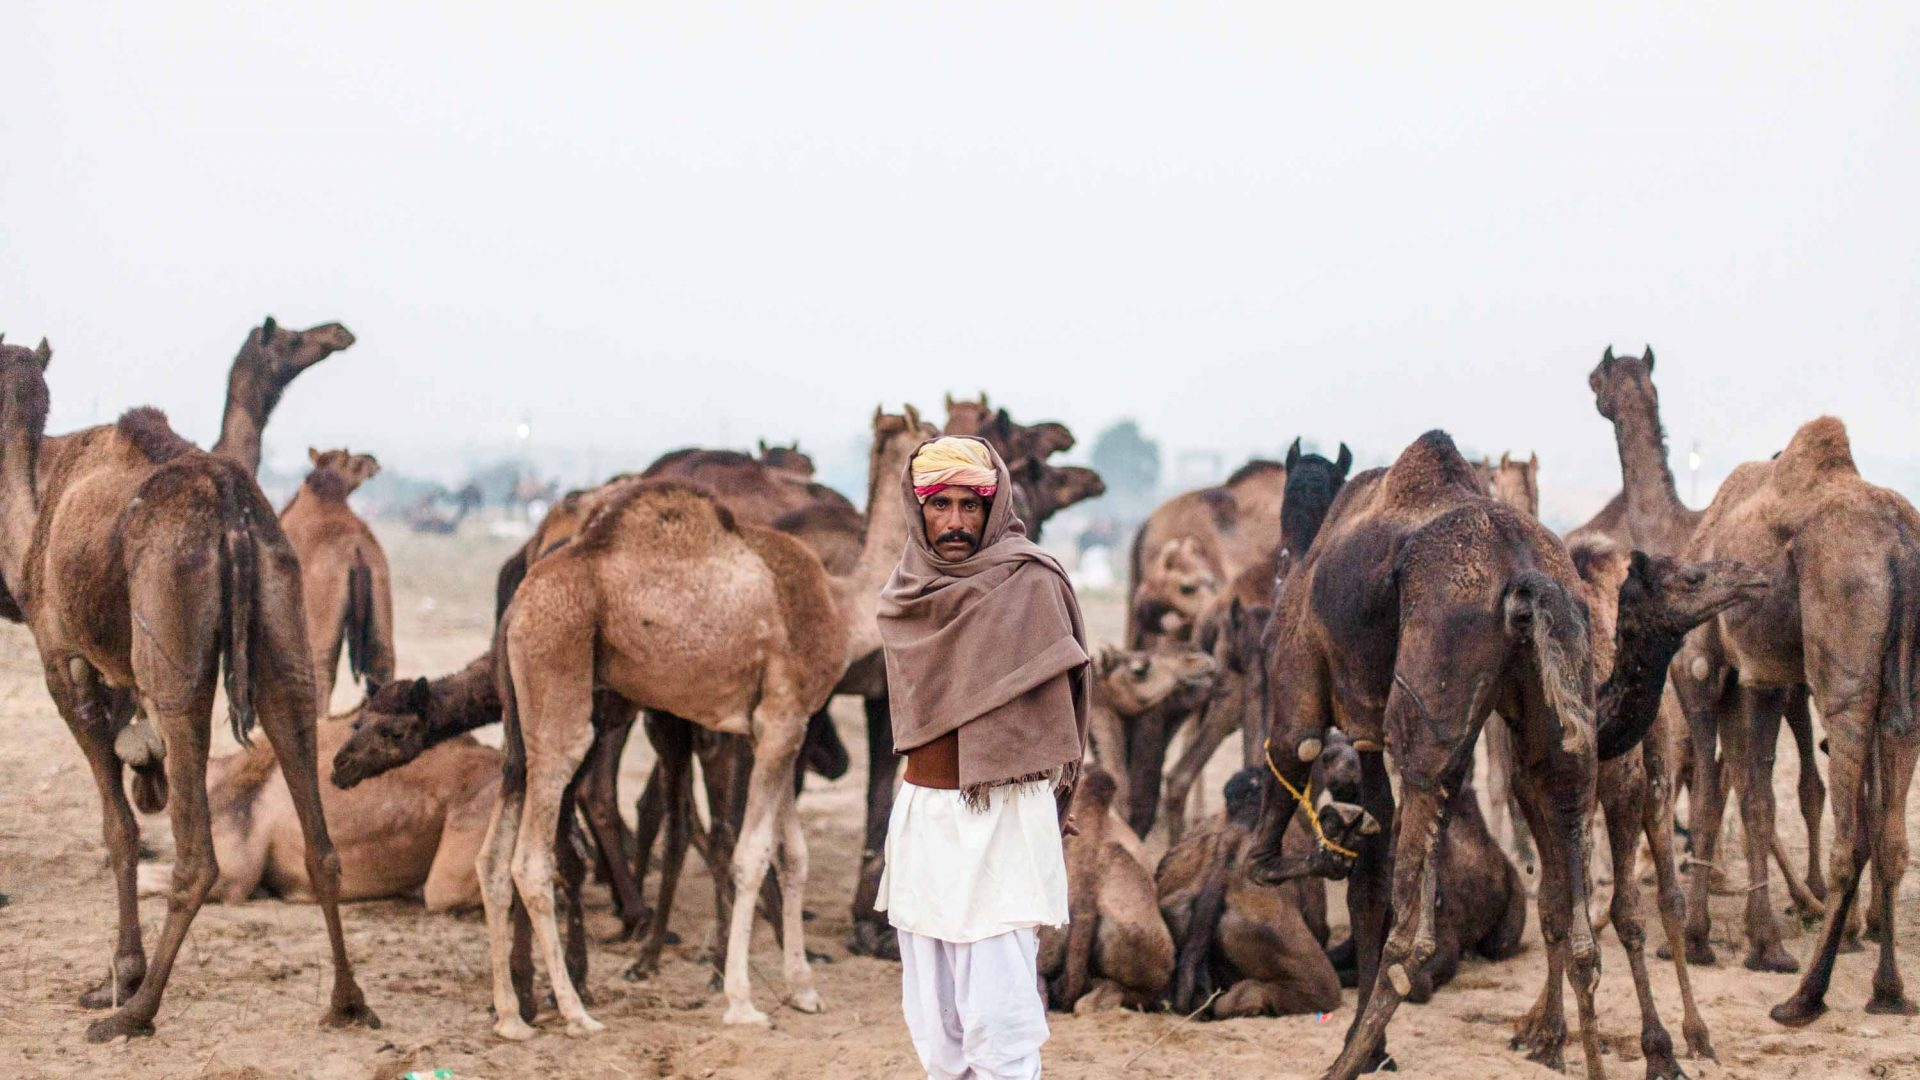 A herder and his camels at Pushkar Camel Fair.